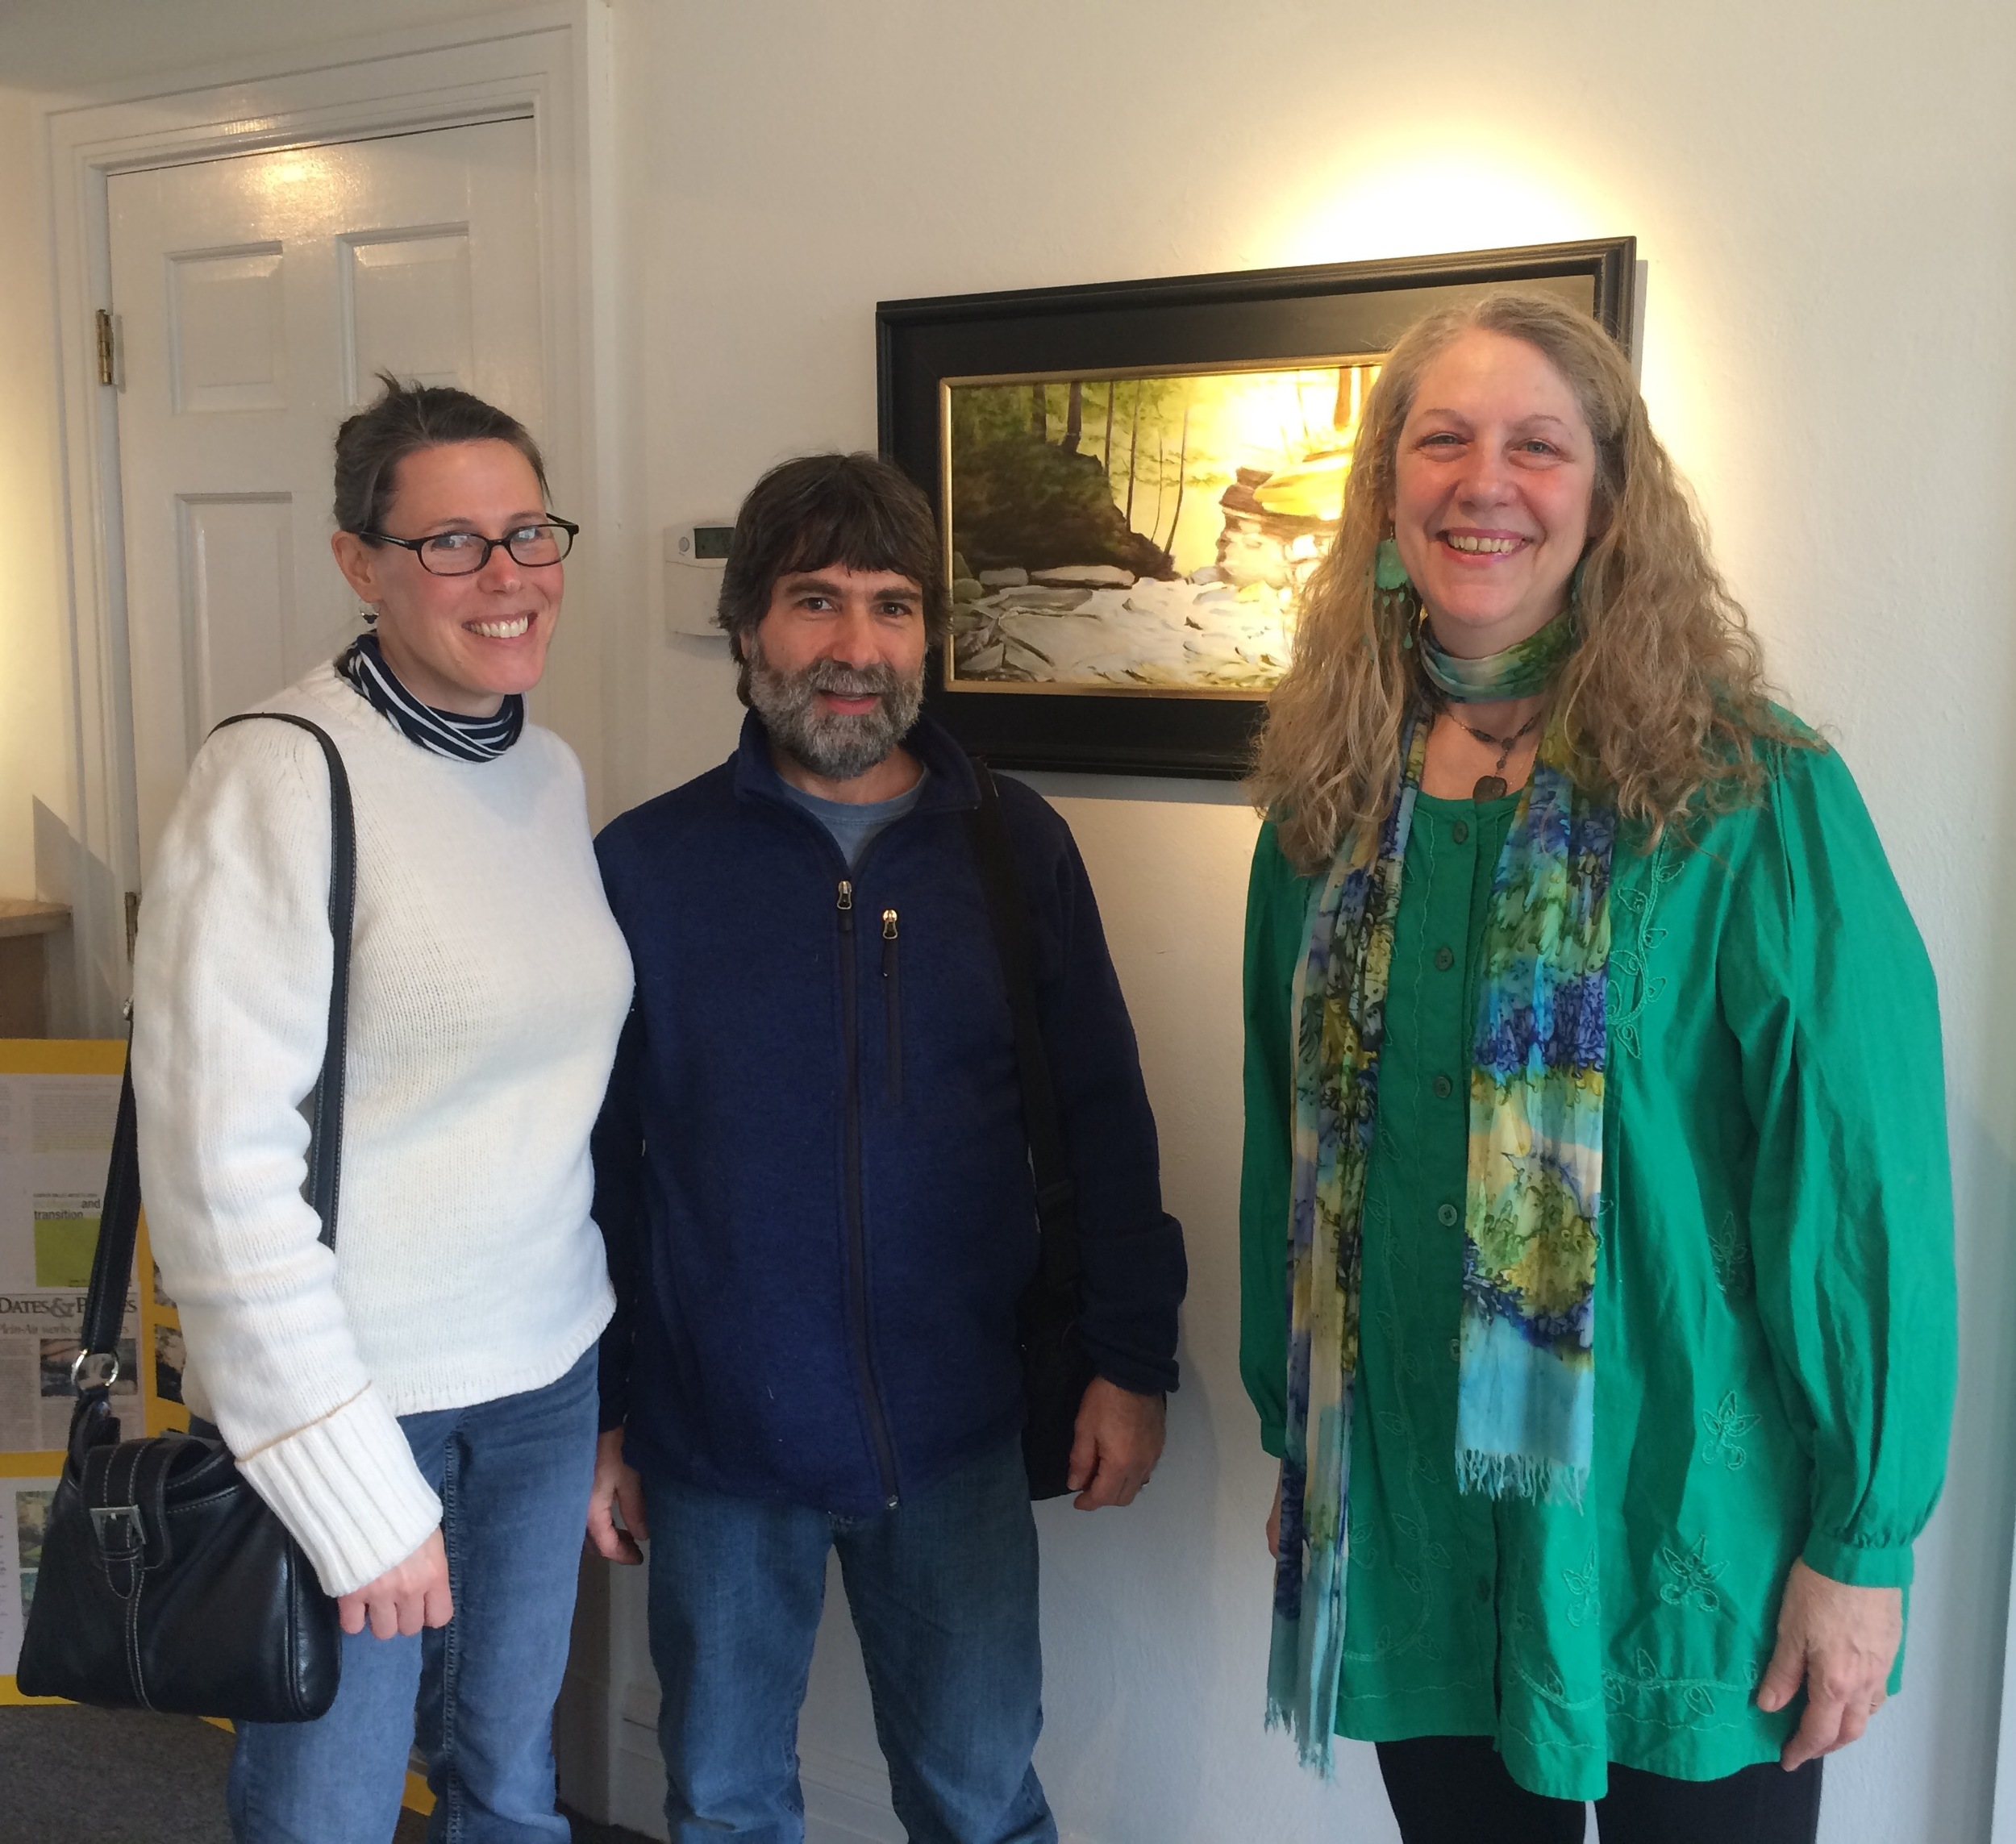 Susan Miiller (Far Right) pictured here with William and Dana, two attendees on Saturday, March 5th.